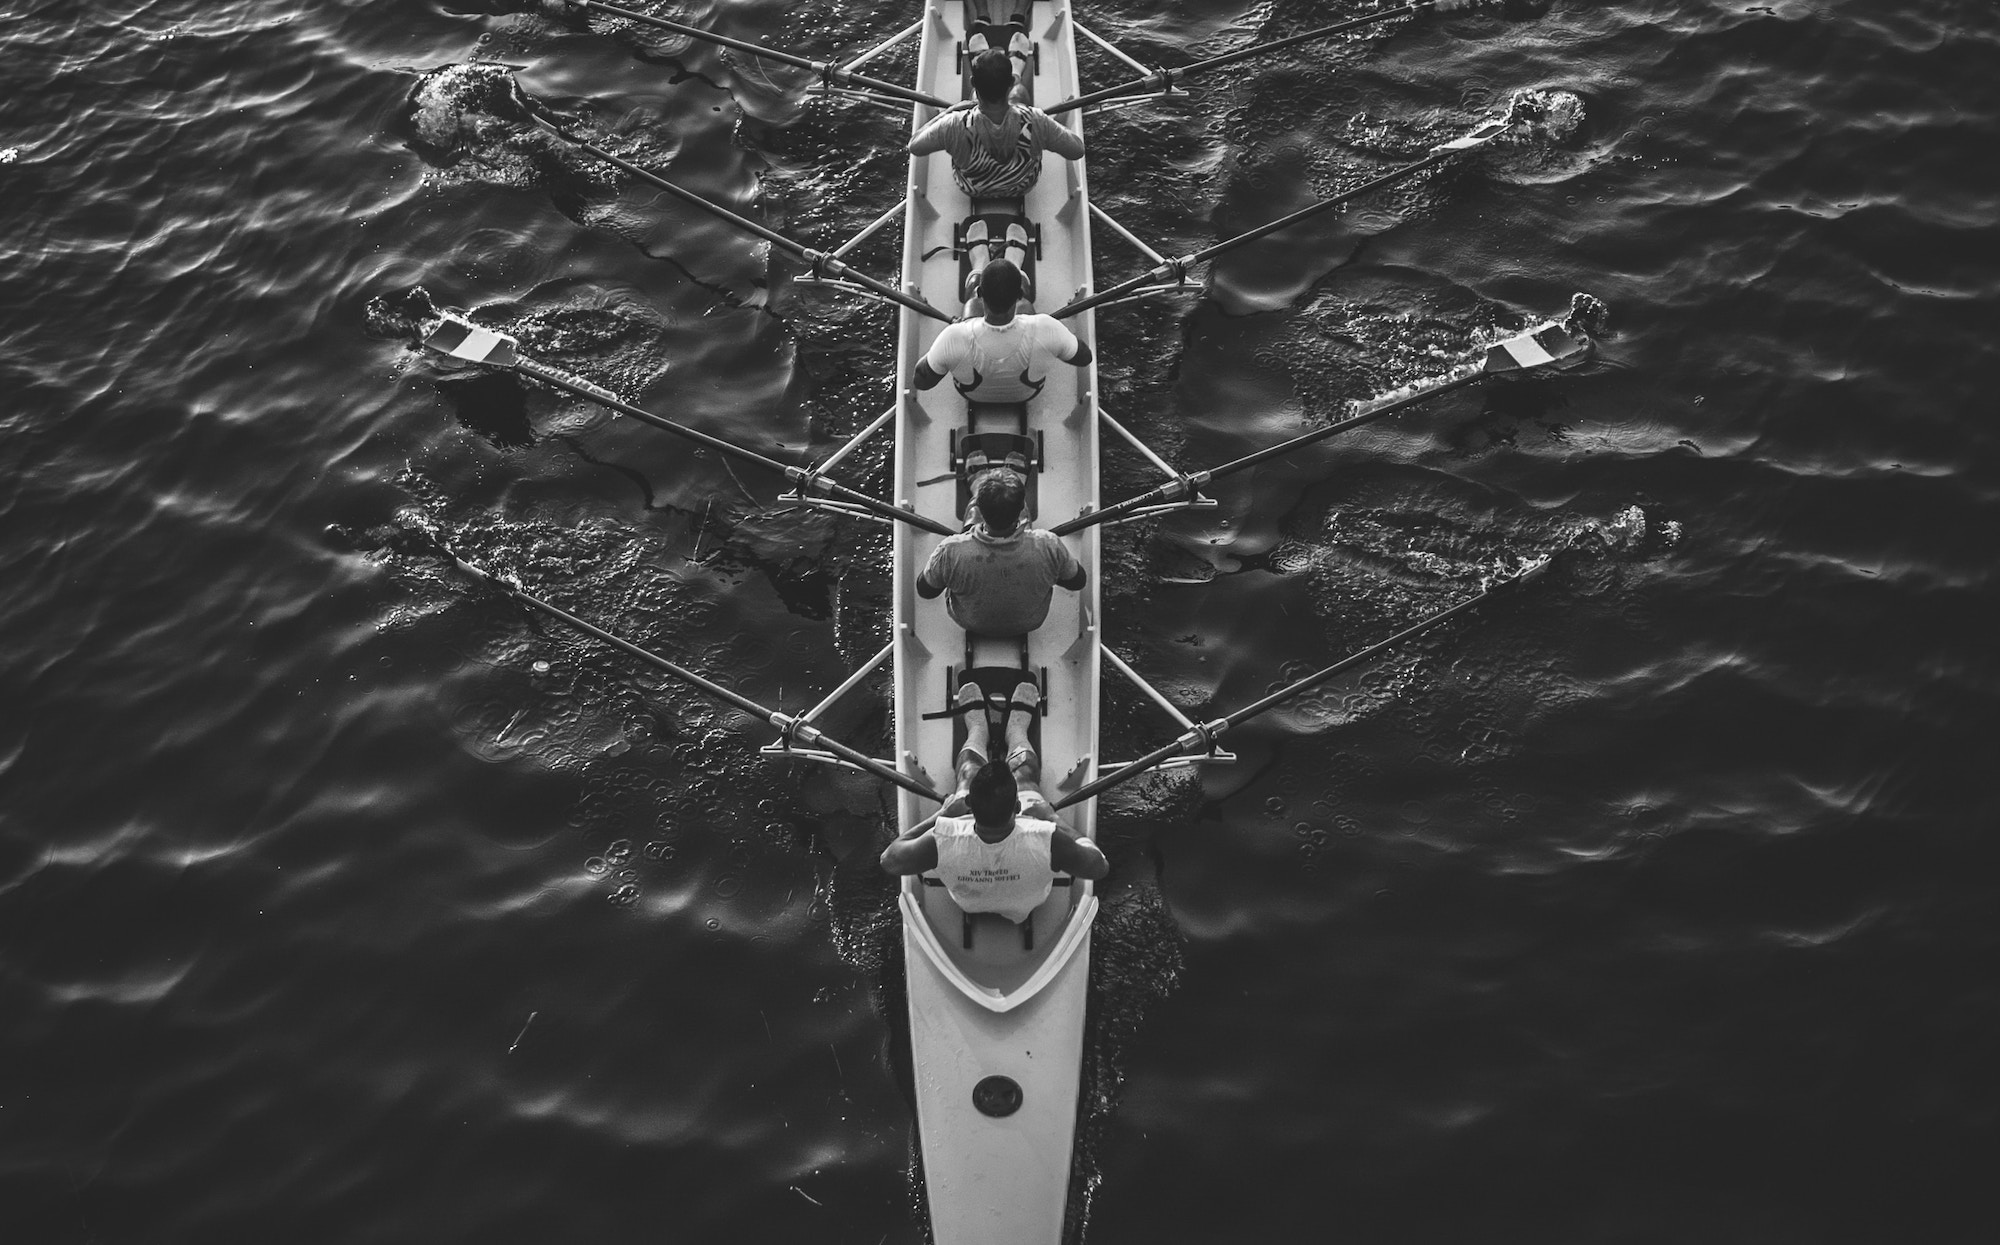 crew rowing together grayscale